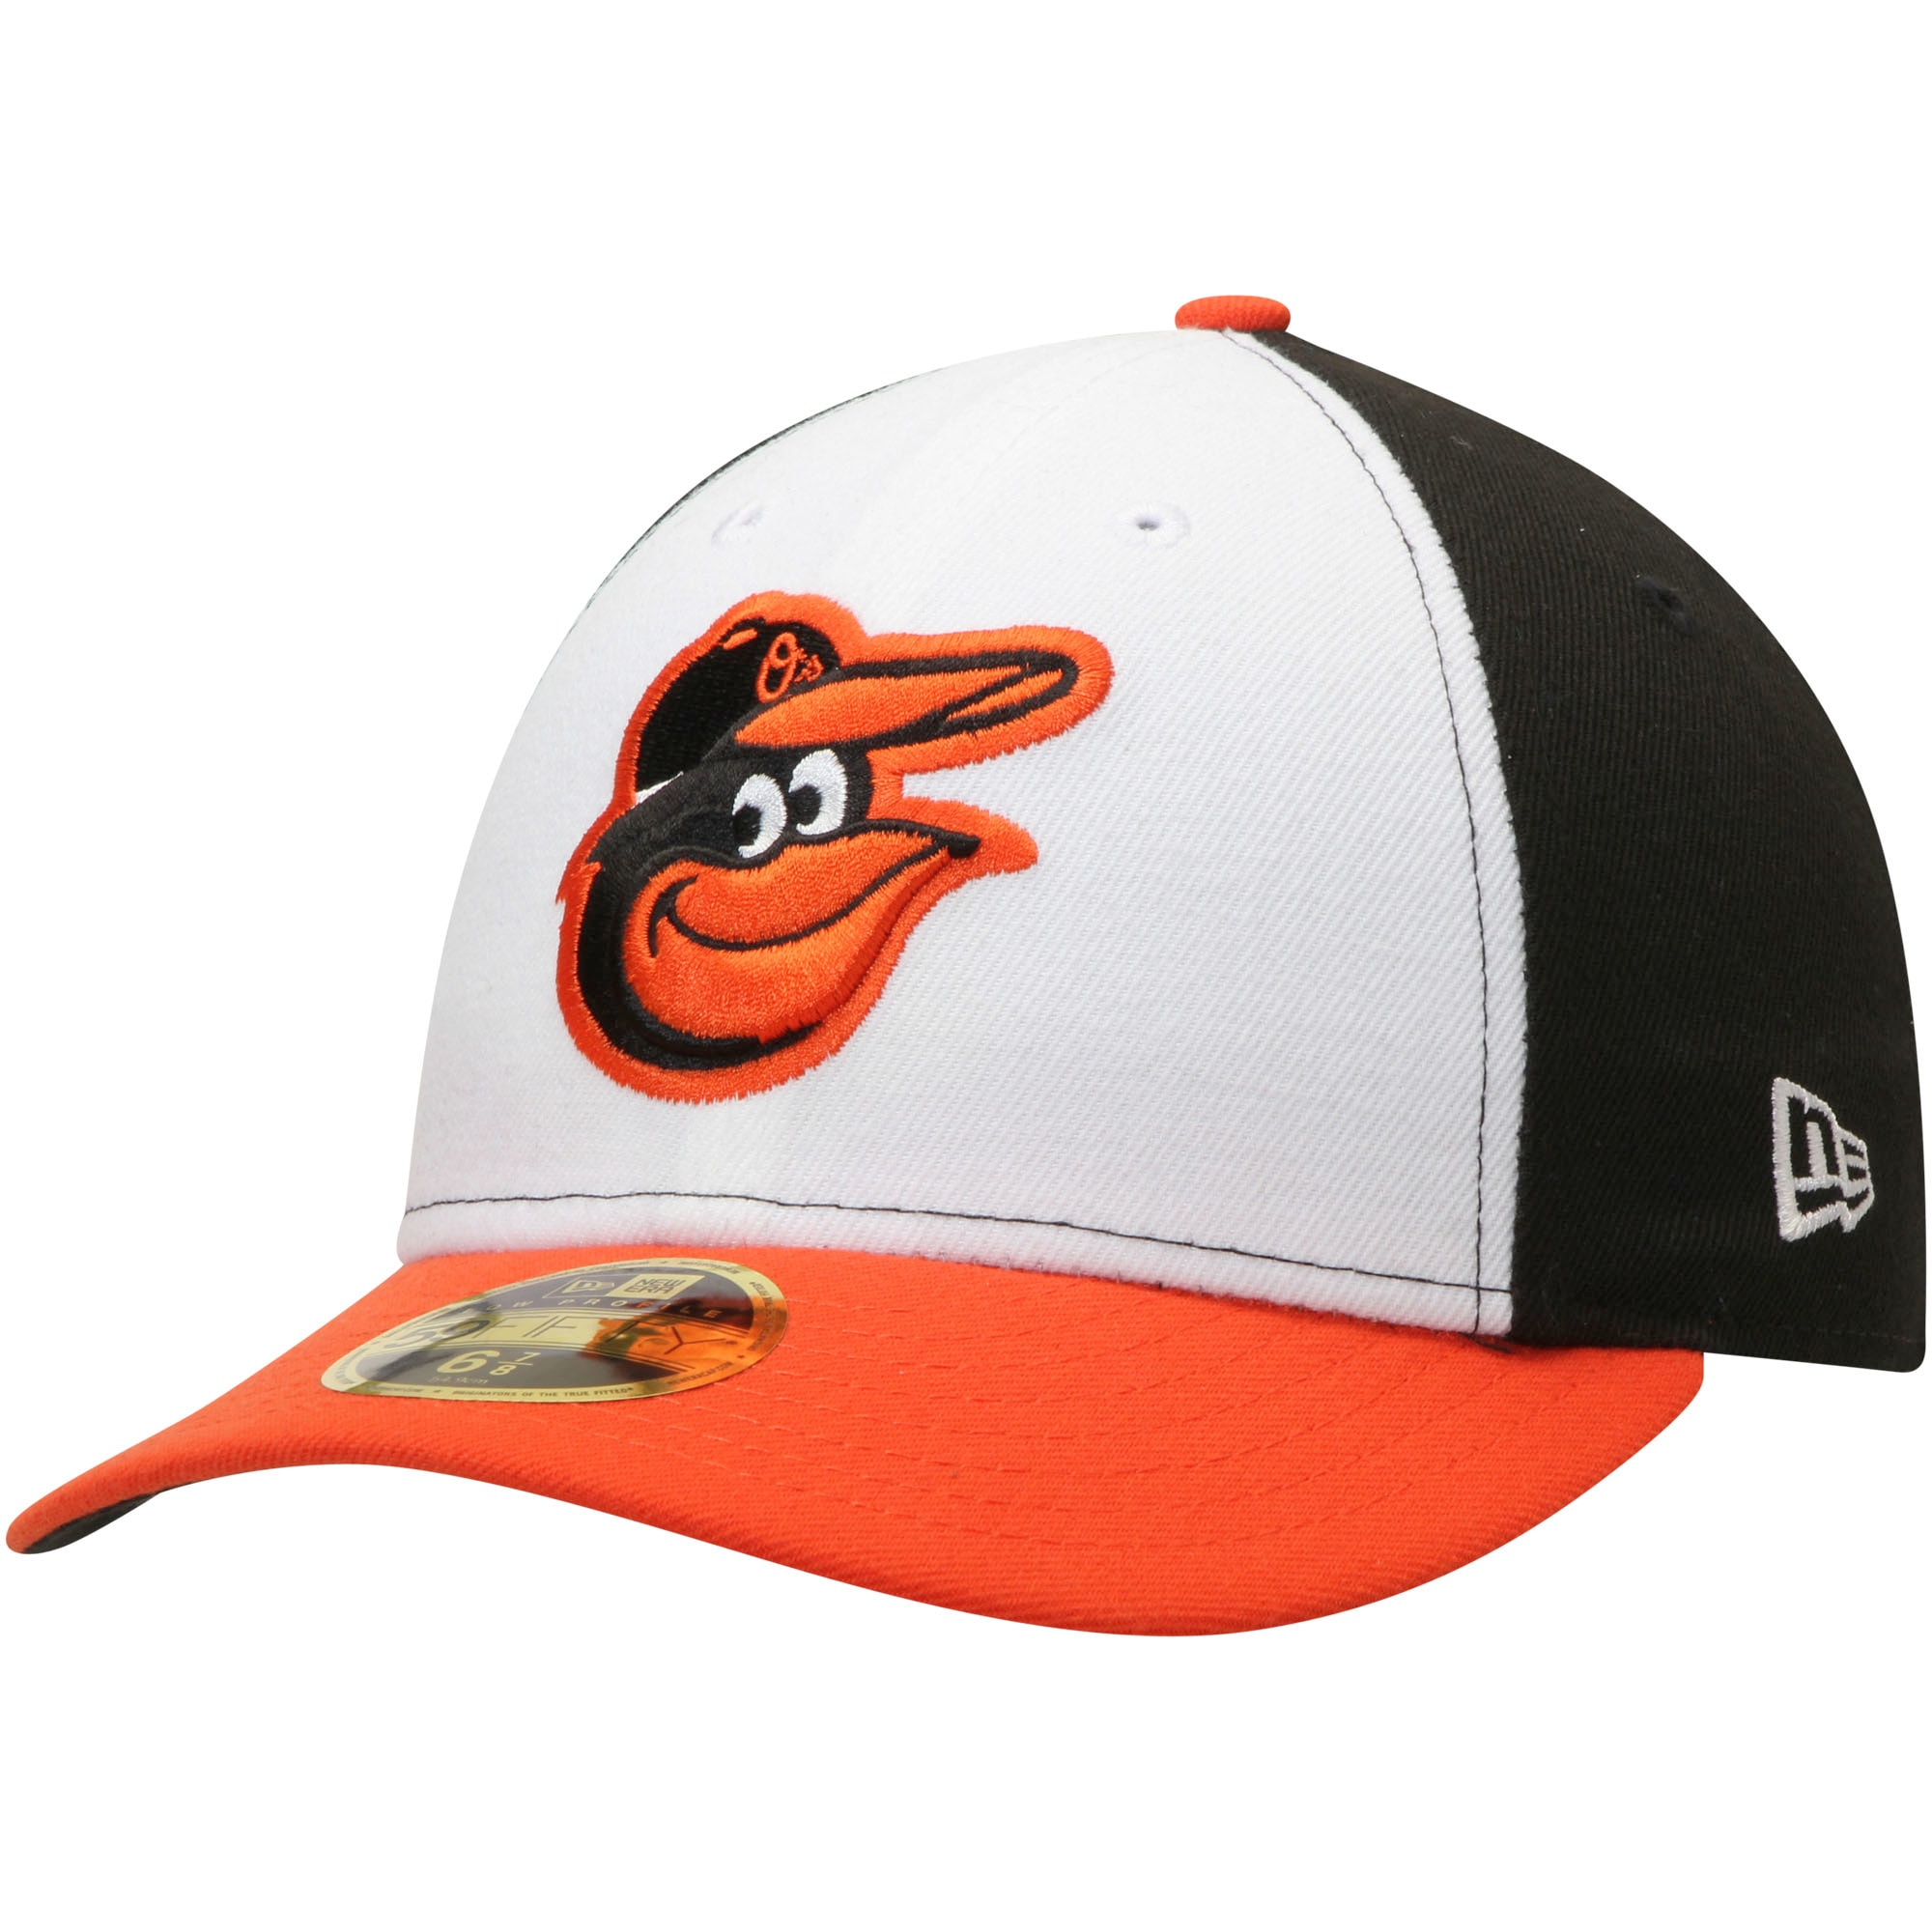 Baltimore Orioles New Era Home Authentic Collection On-Field Low Profile 59FIFTY Fitted Hat - White/Orange